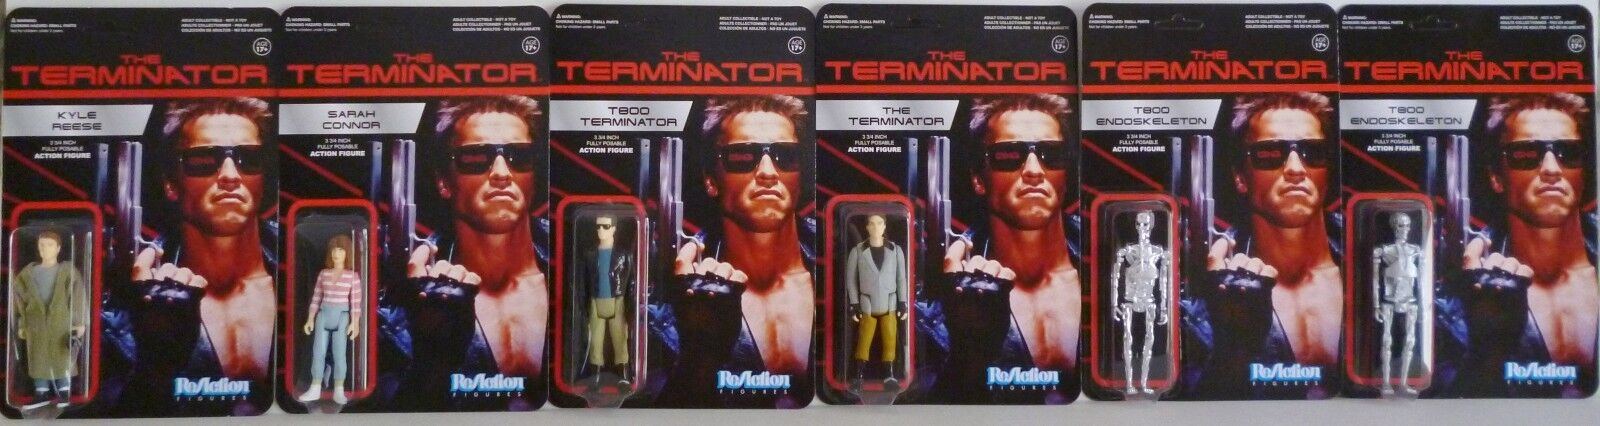 Der terminator 3 3   4  - posable reaktion retro - action - figur von 6 bis 2014